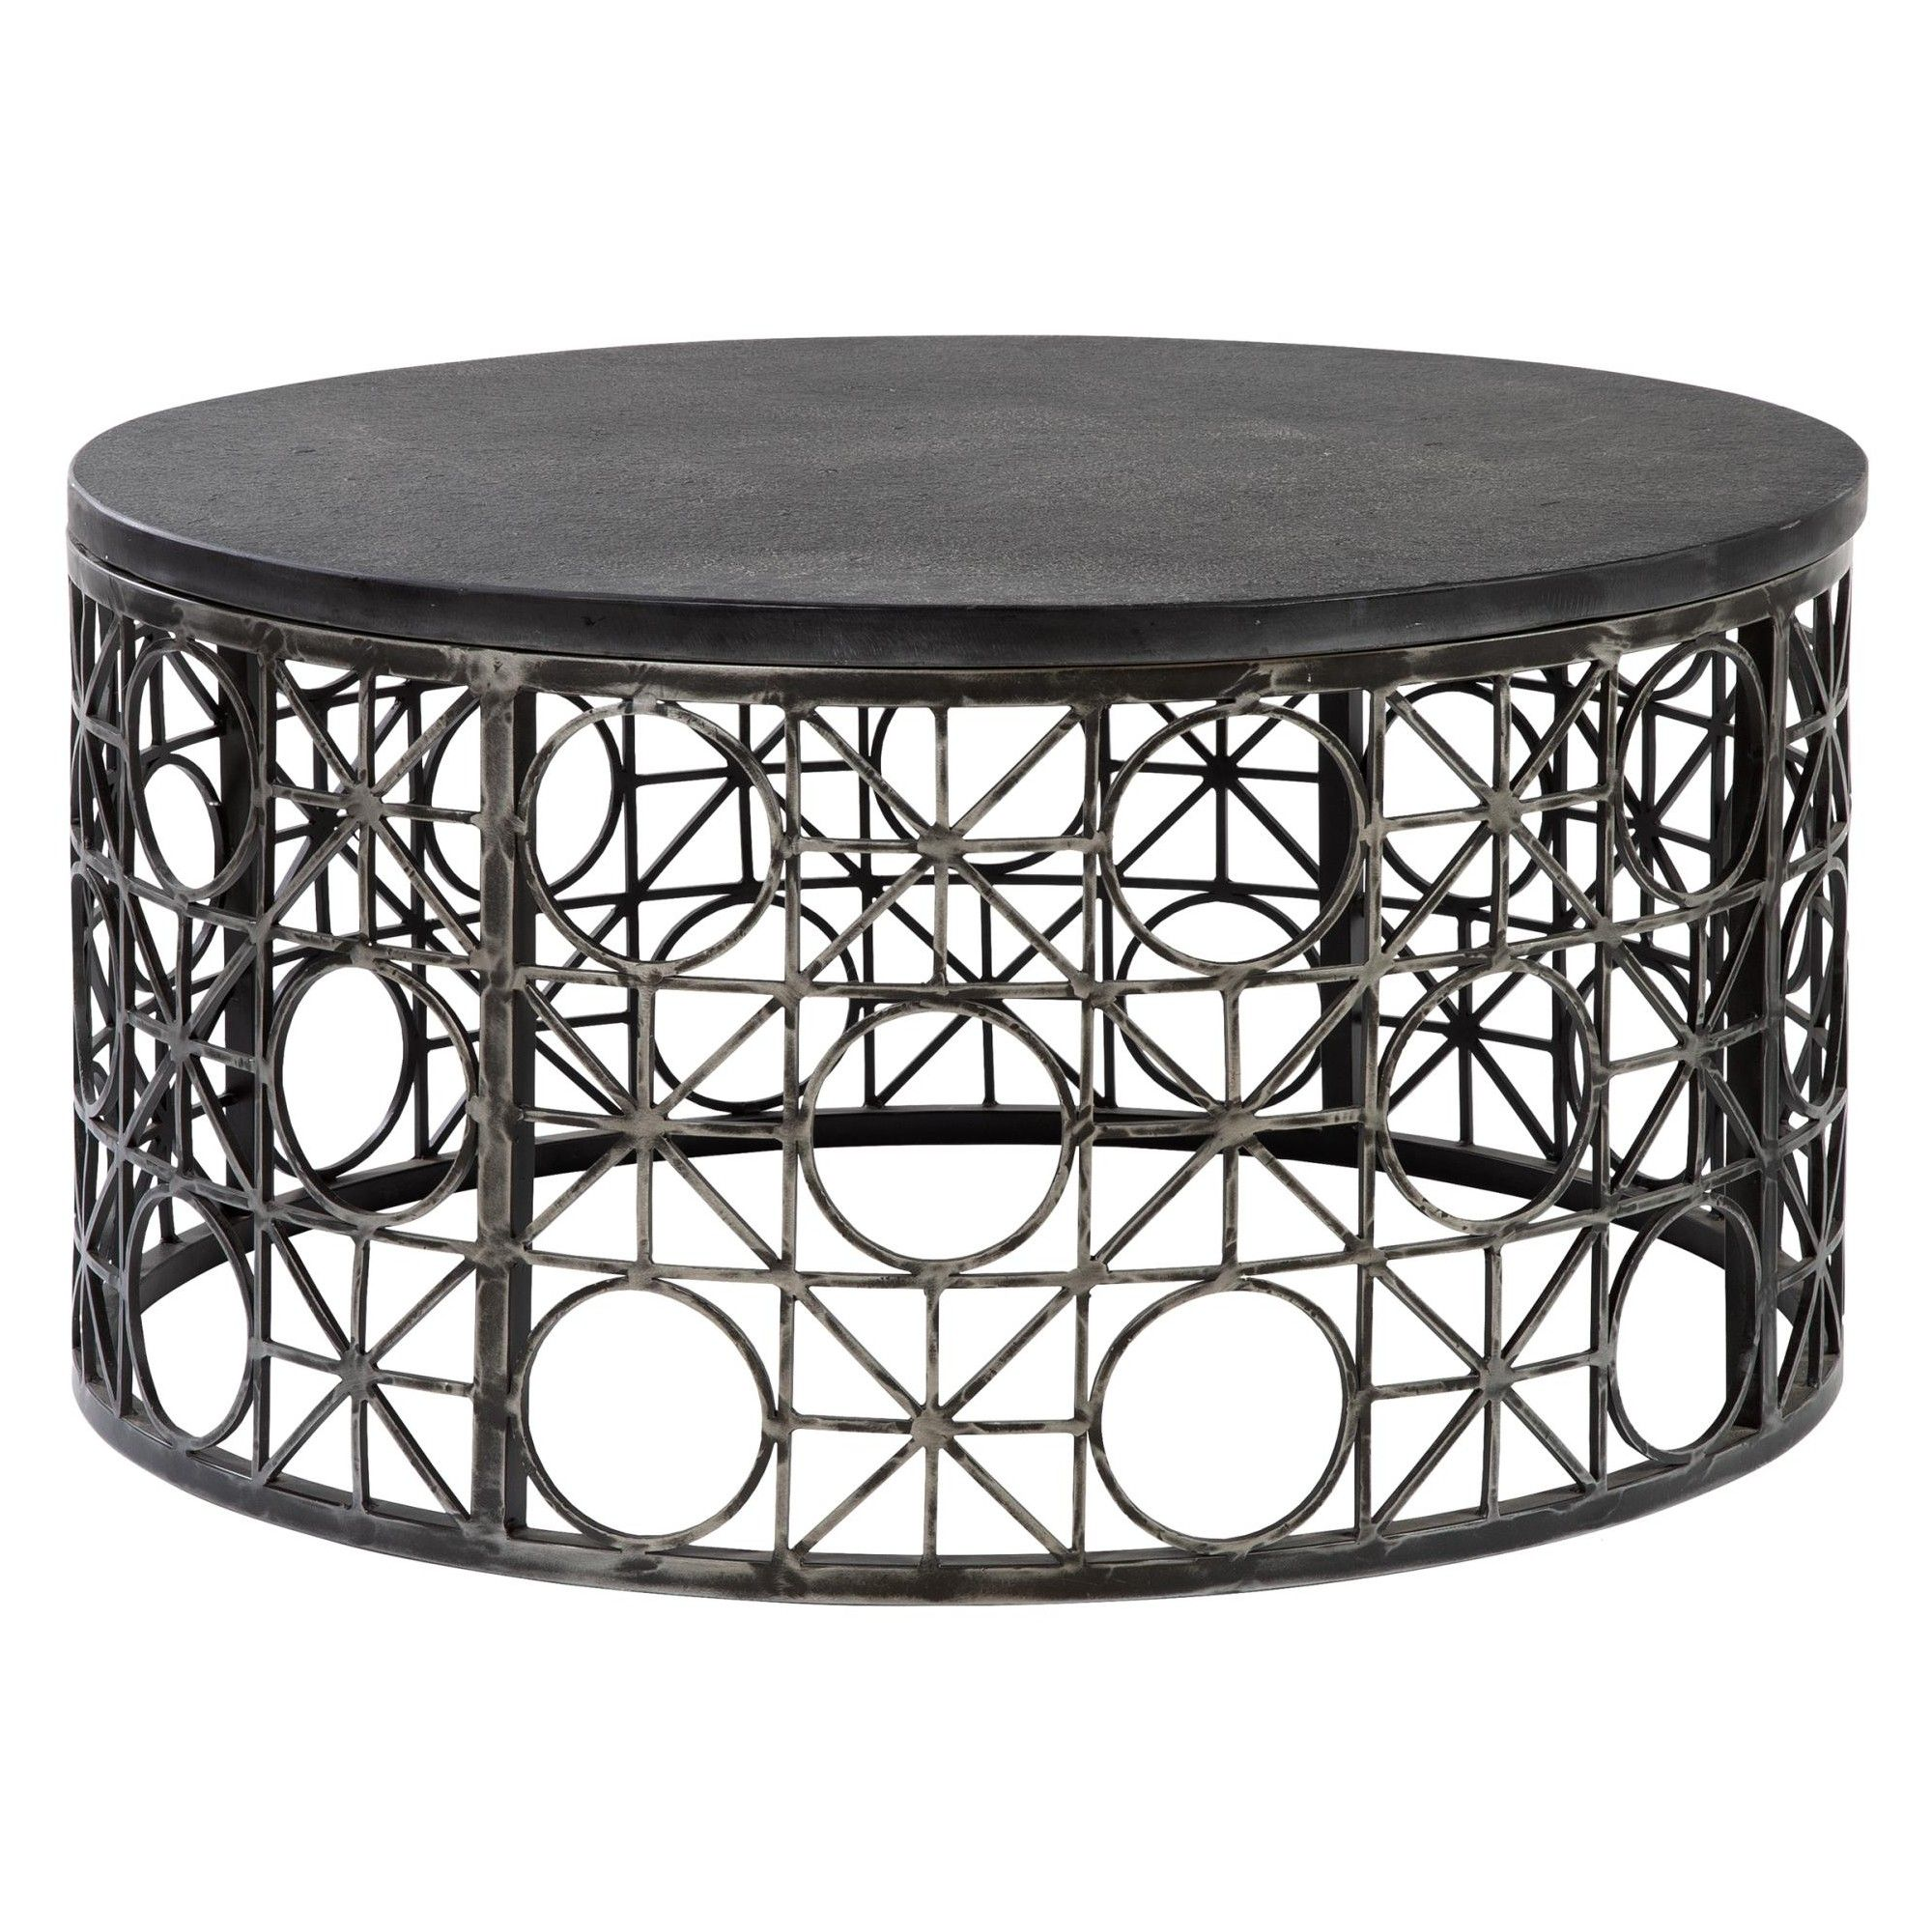 Jewel Round Coffee And Side Table Set Opalhouse In 2021 Side Table Bamboo Coffee Table Small Accent Tables [ 1000 x 1000 Pixel ]